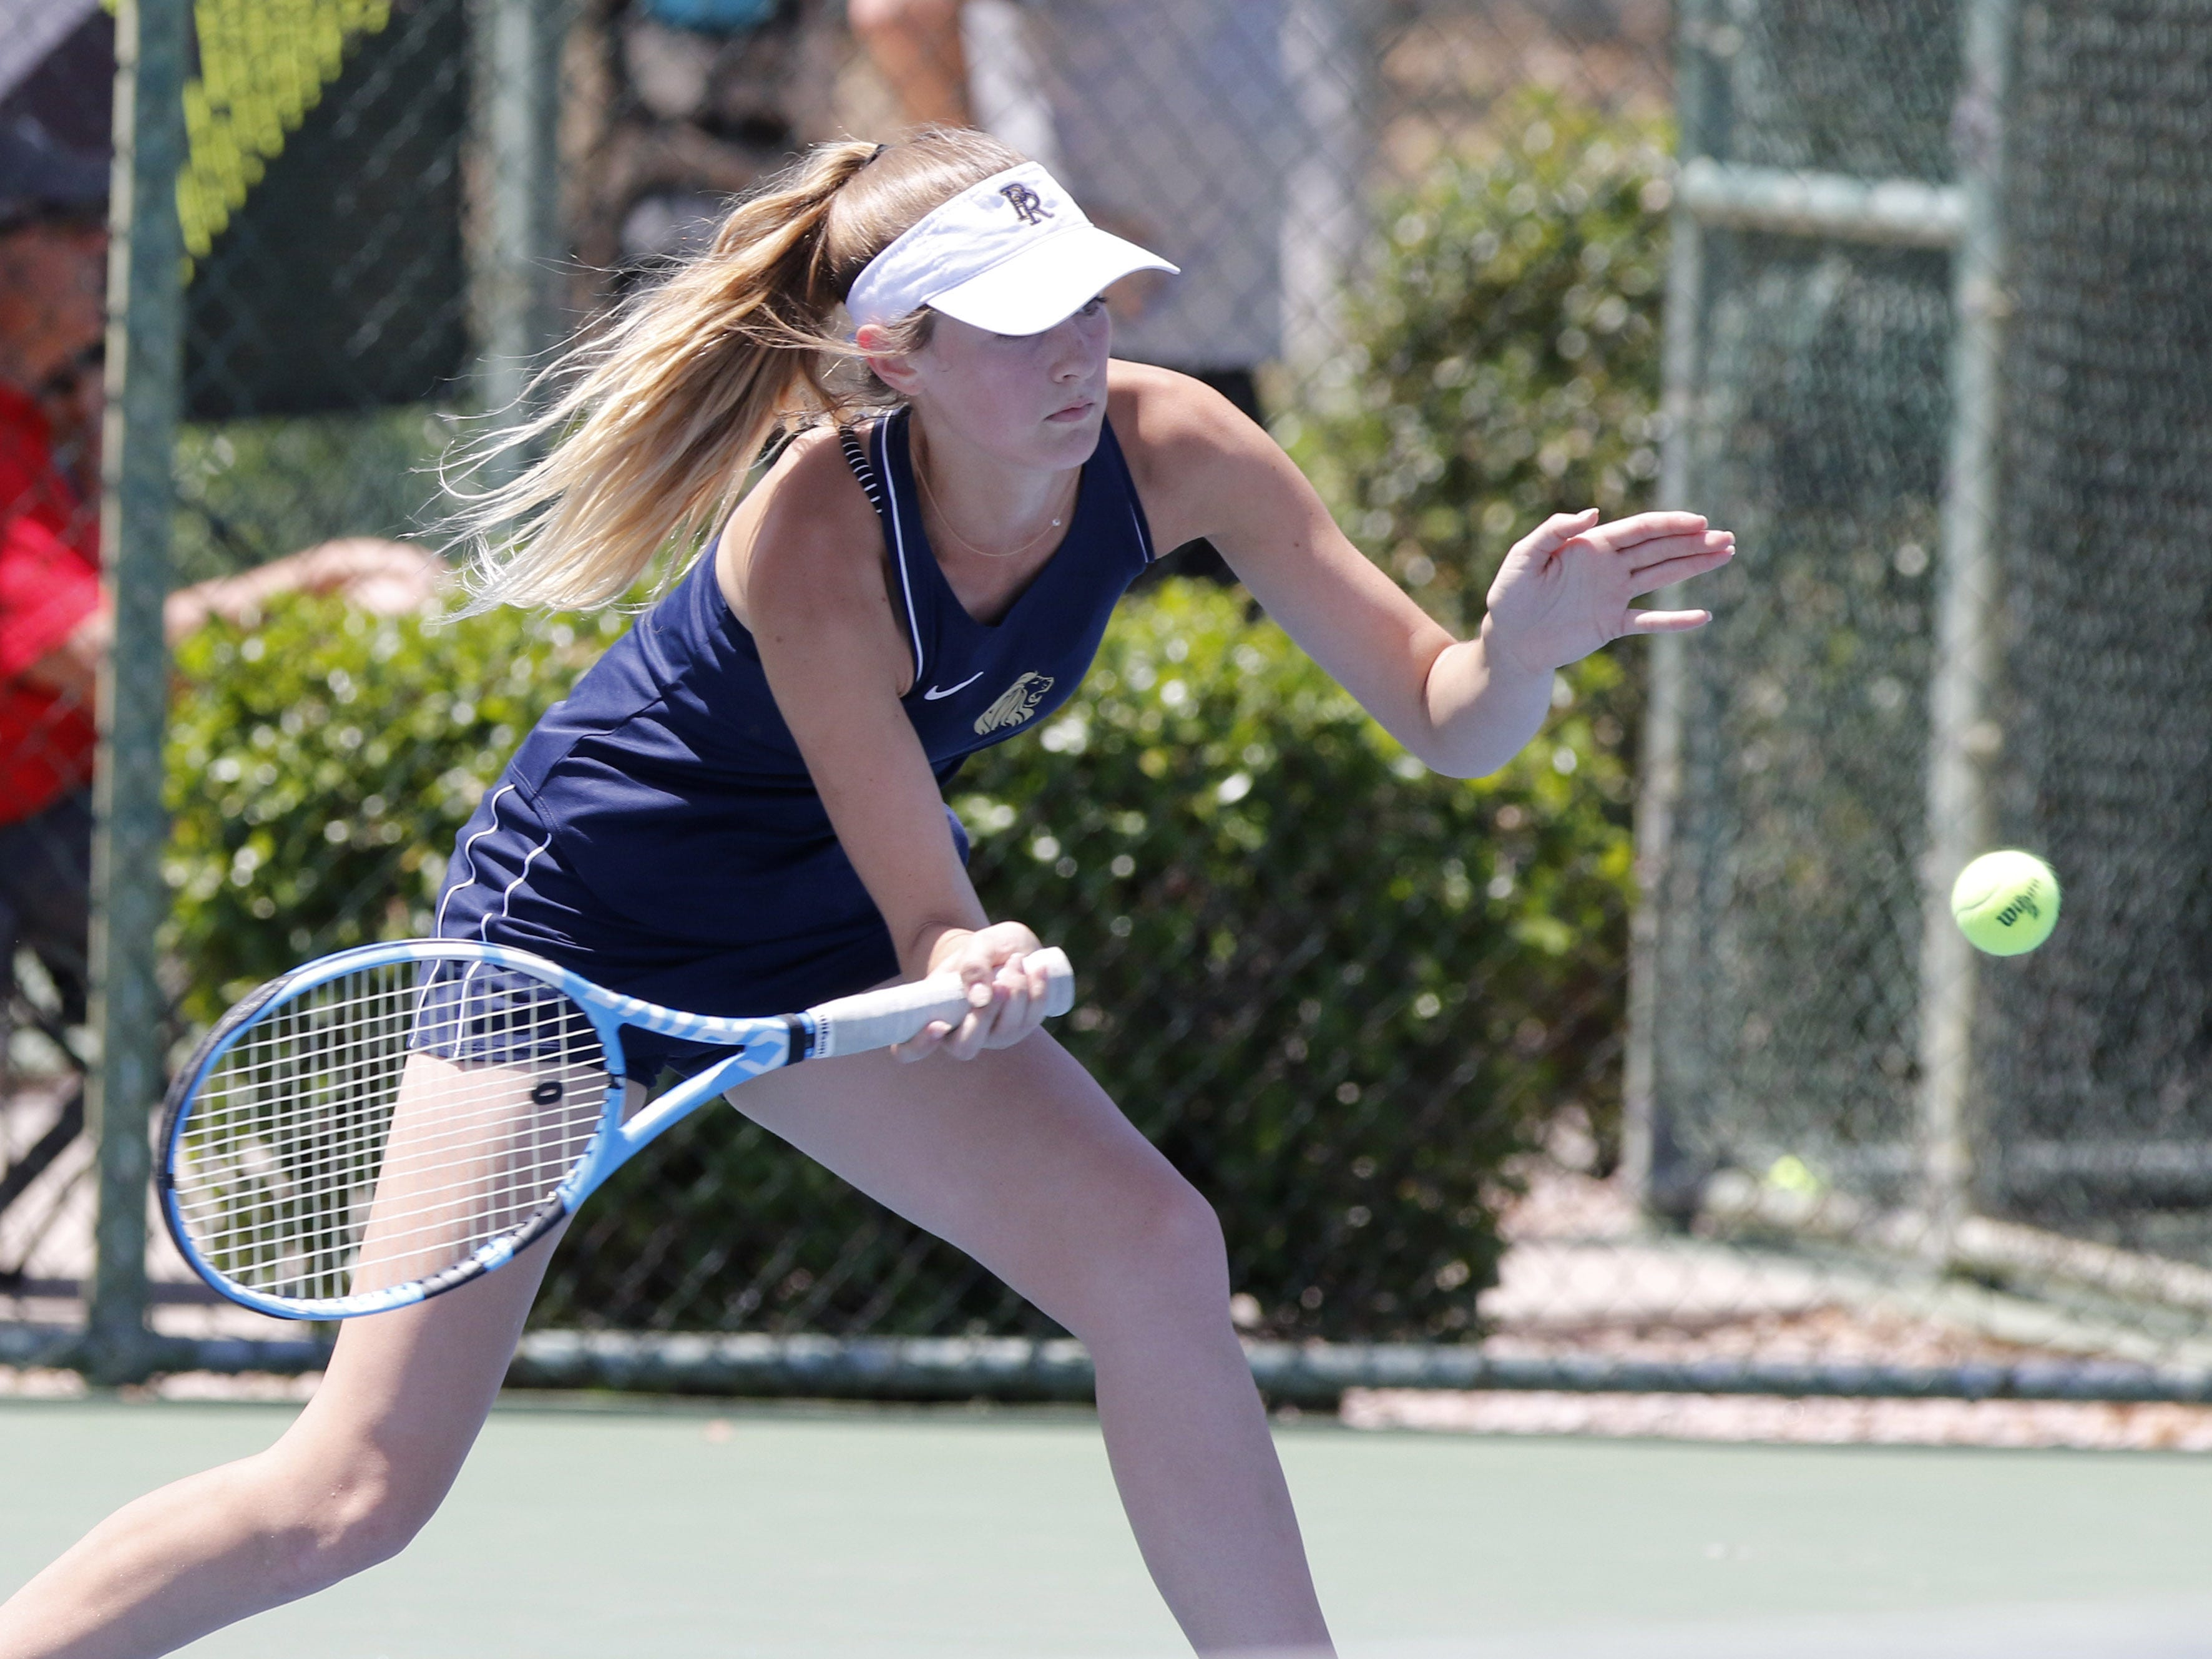 Pusch Ridge's Emma Reily returns a shot against Thatcher's Ashlyn McMasters during the Division III tennis team state championship in Glendale, Arizona, May 04, 2019.